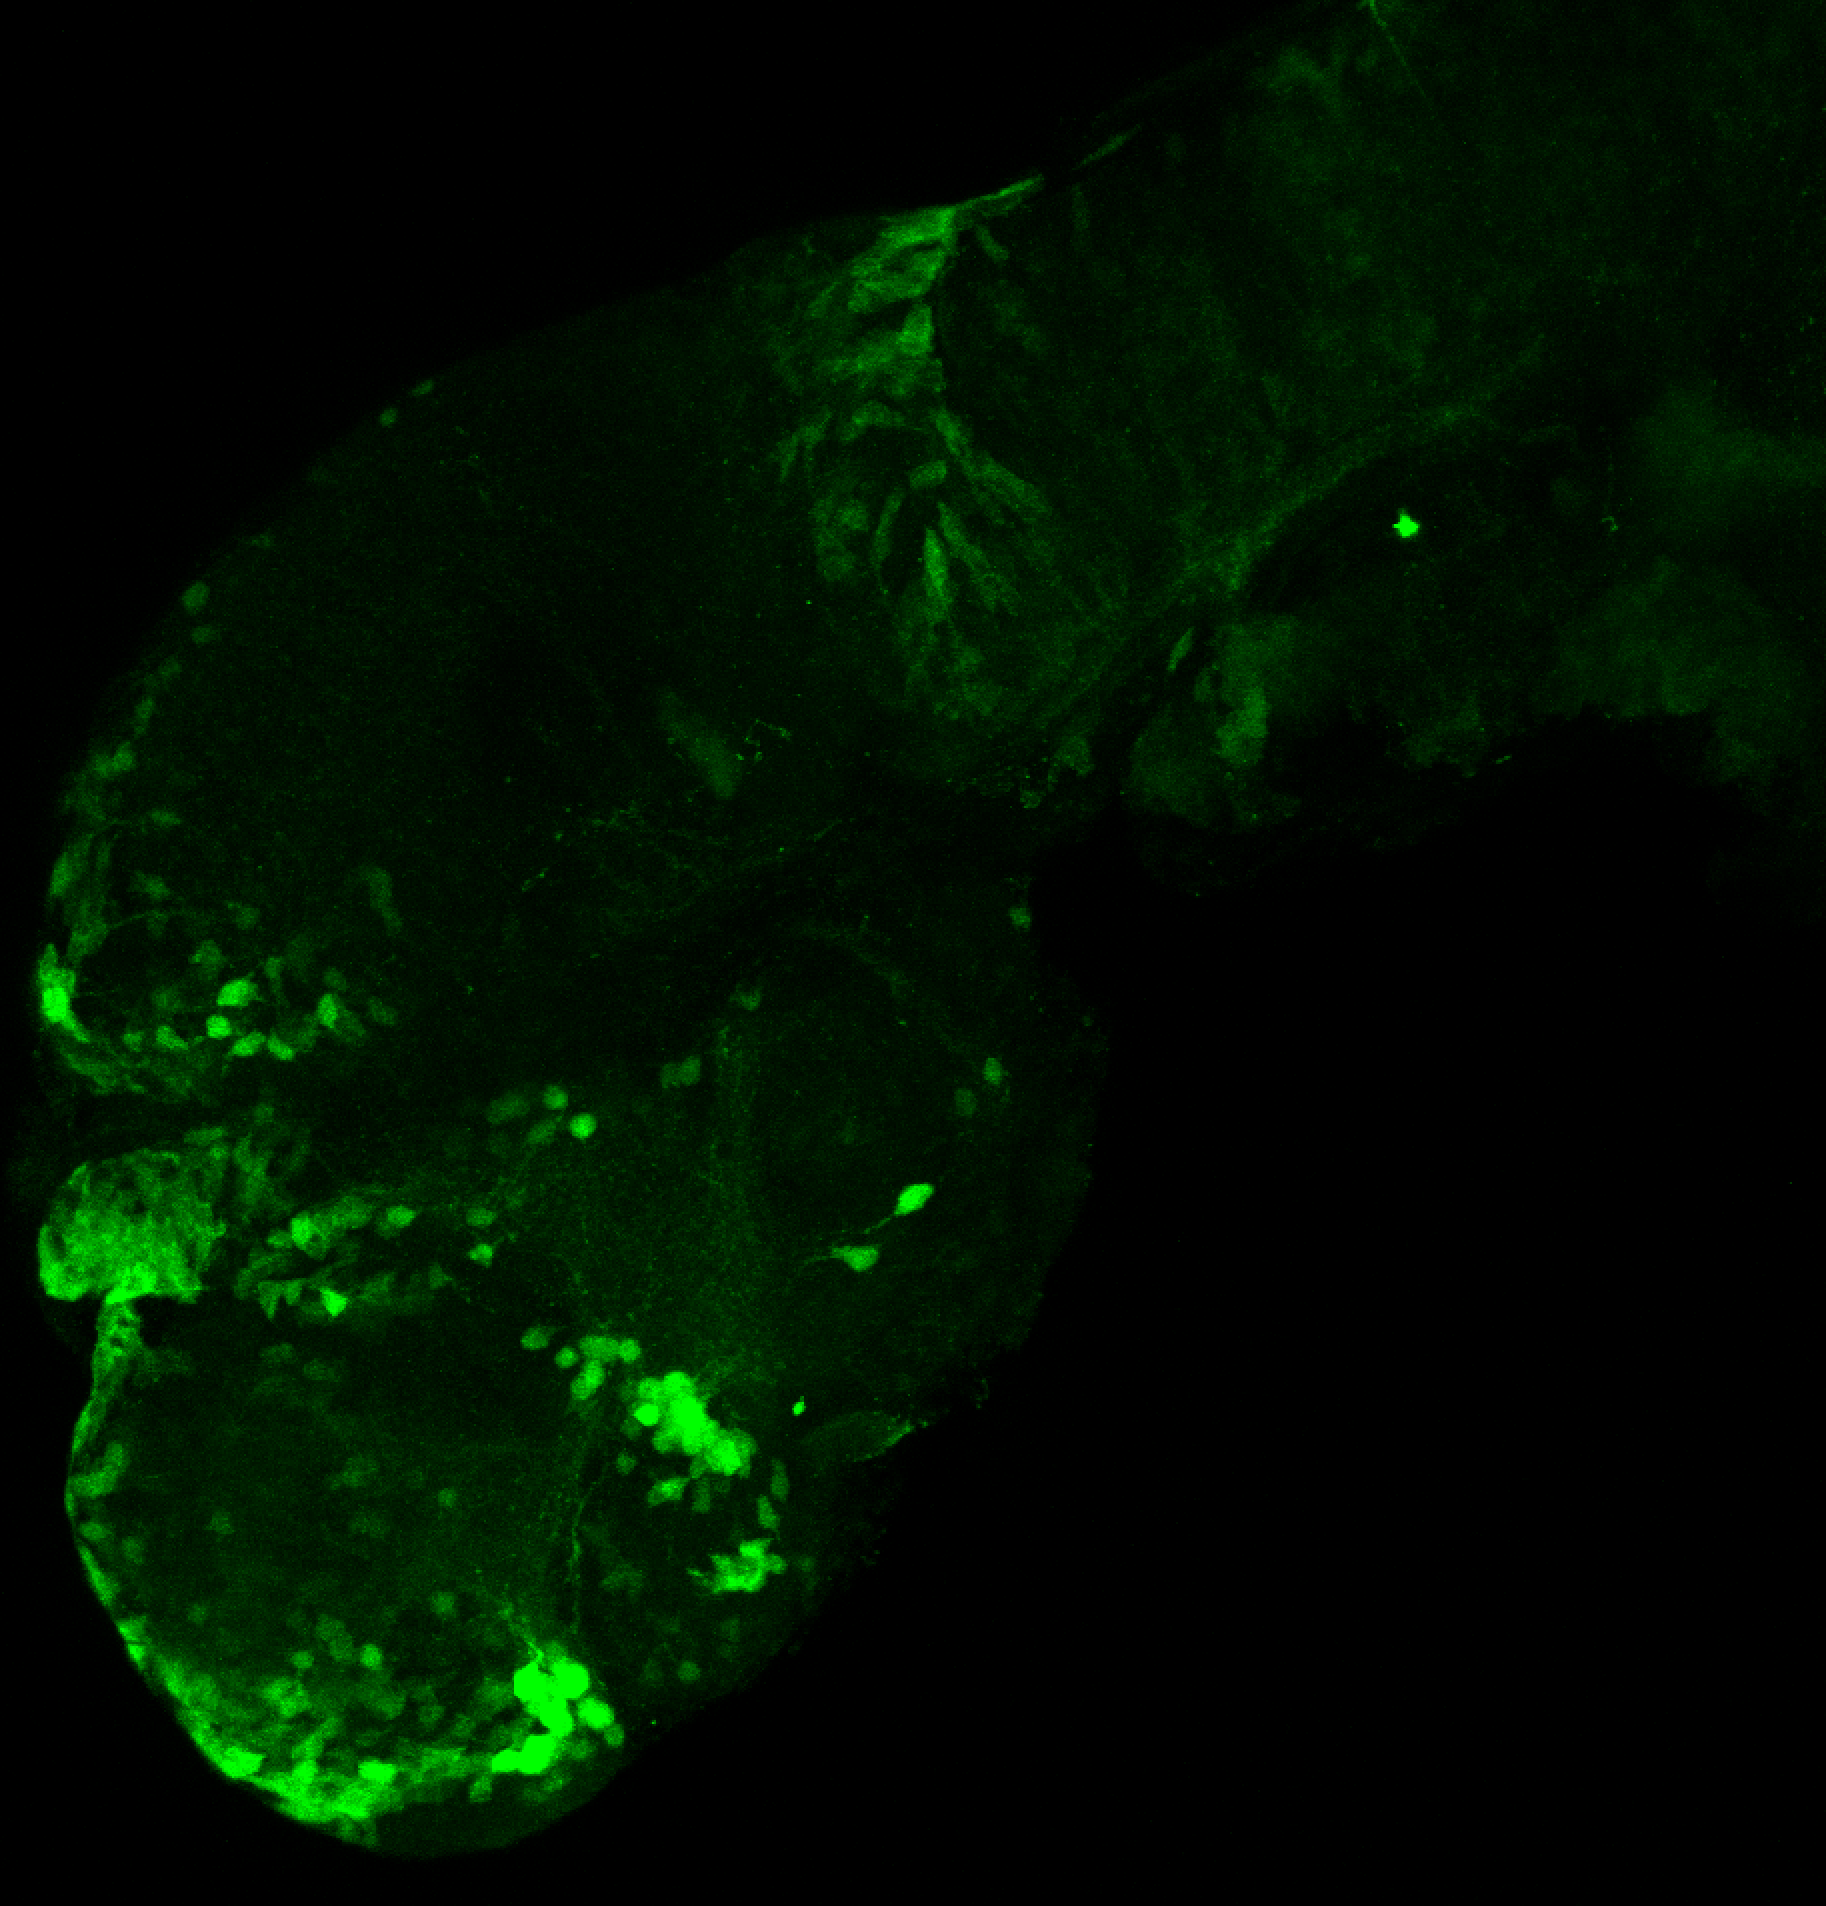 xeom:GFP 2dpf lateral